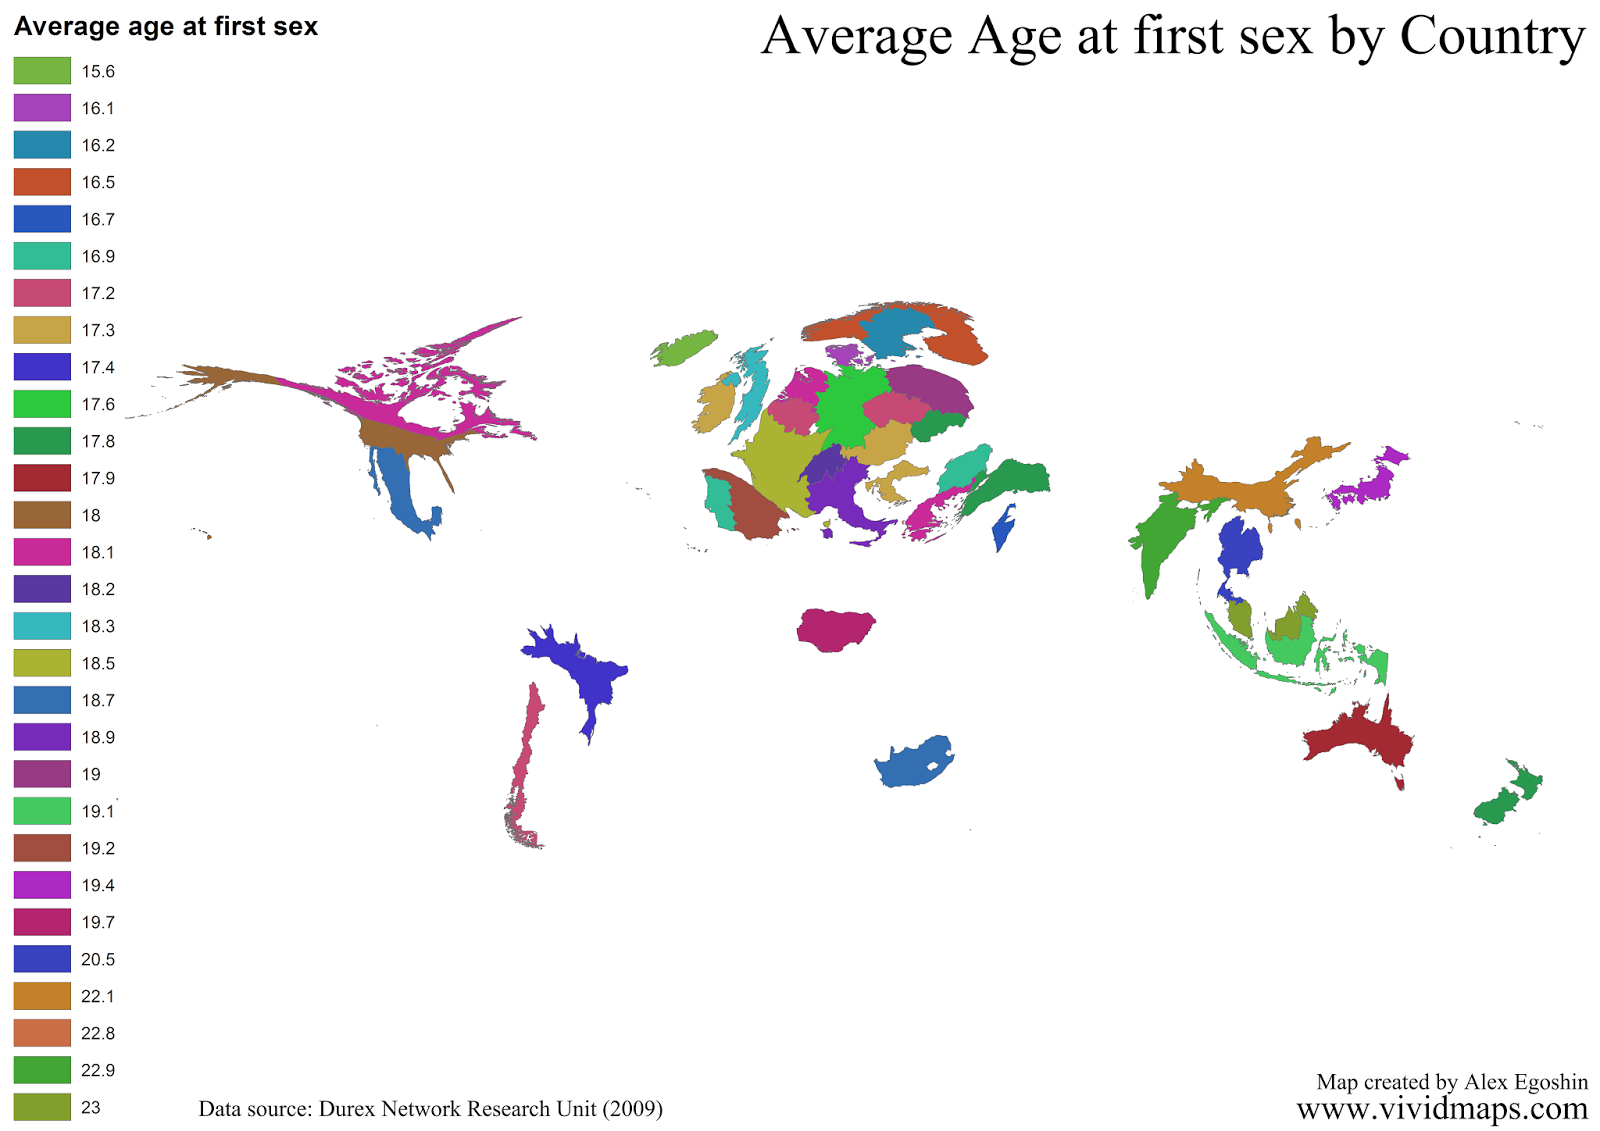 Average Age at first sex